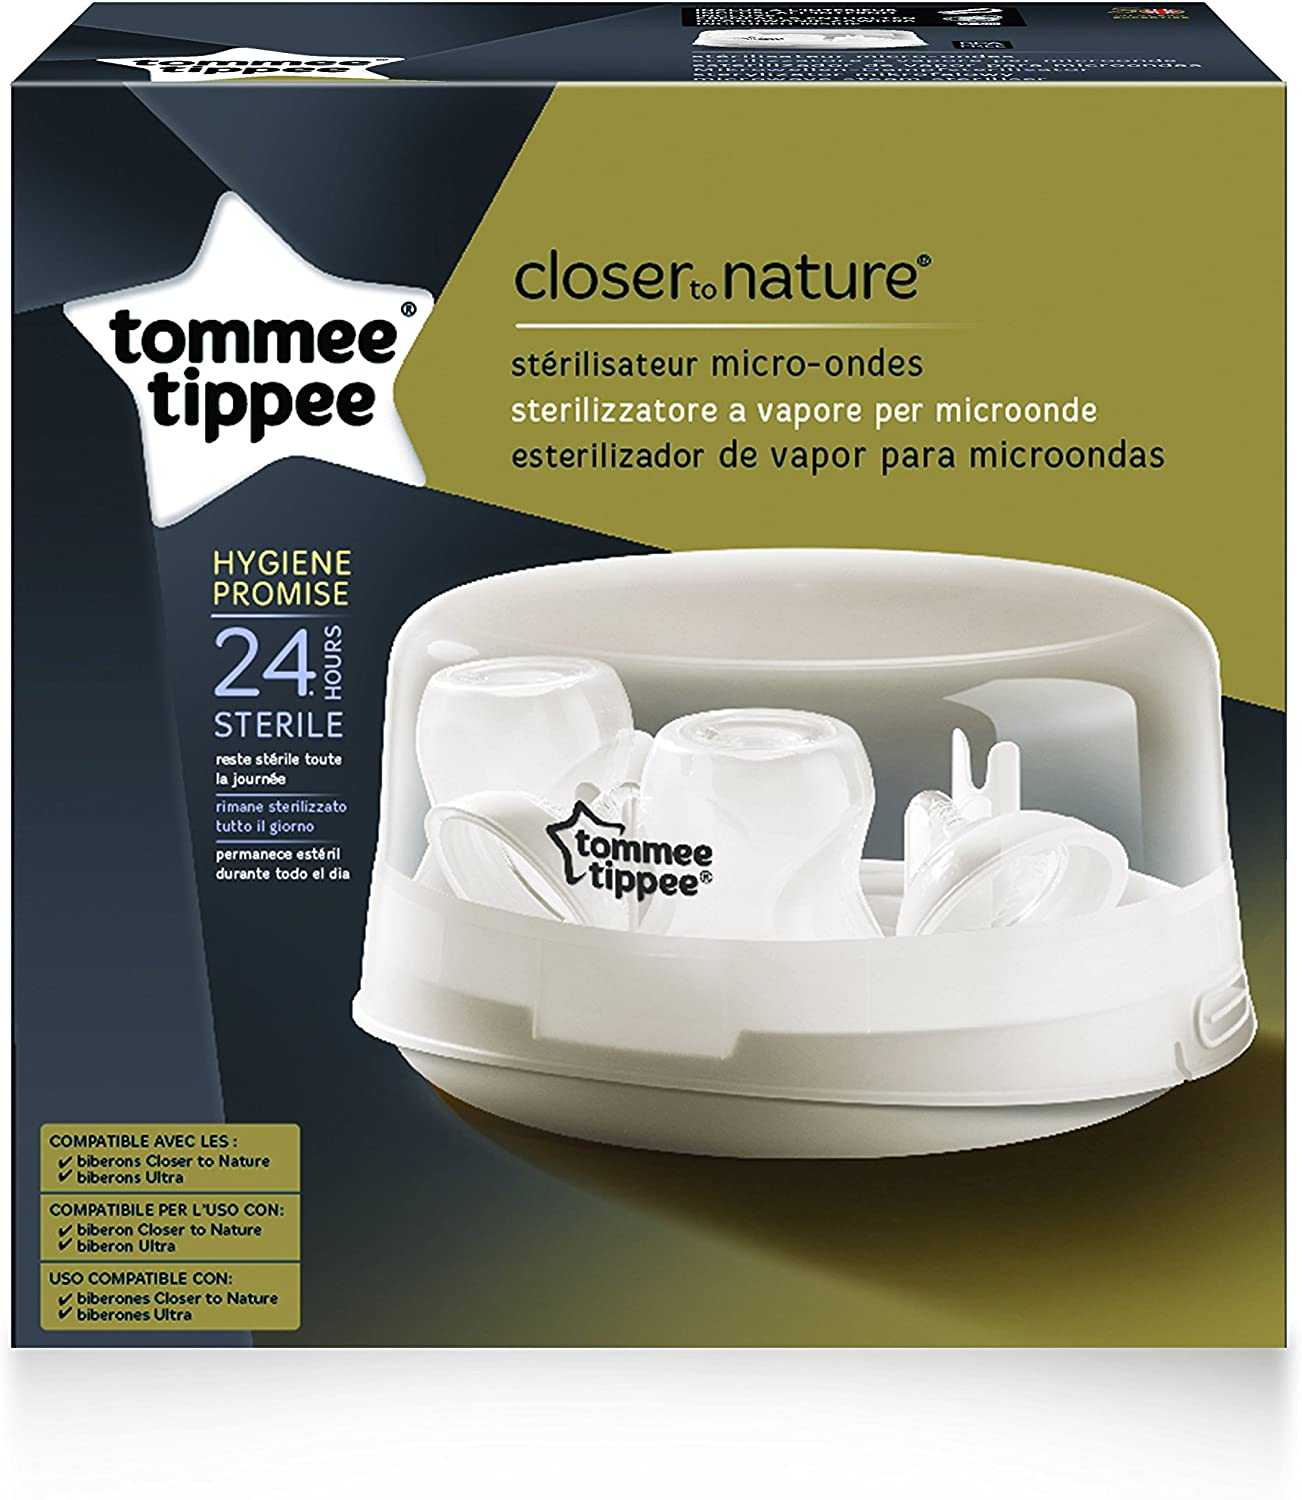 Tommee Tippee Closer to Nature - Esterilizador de vapor para ...